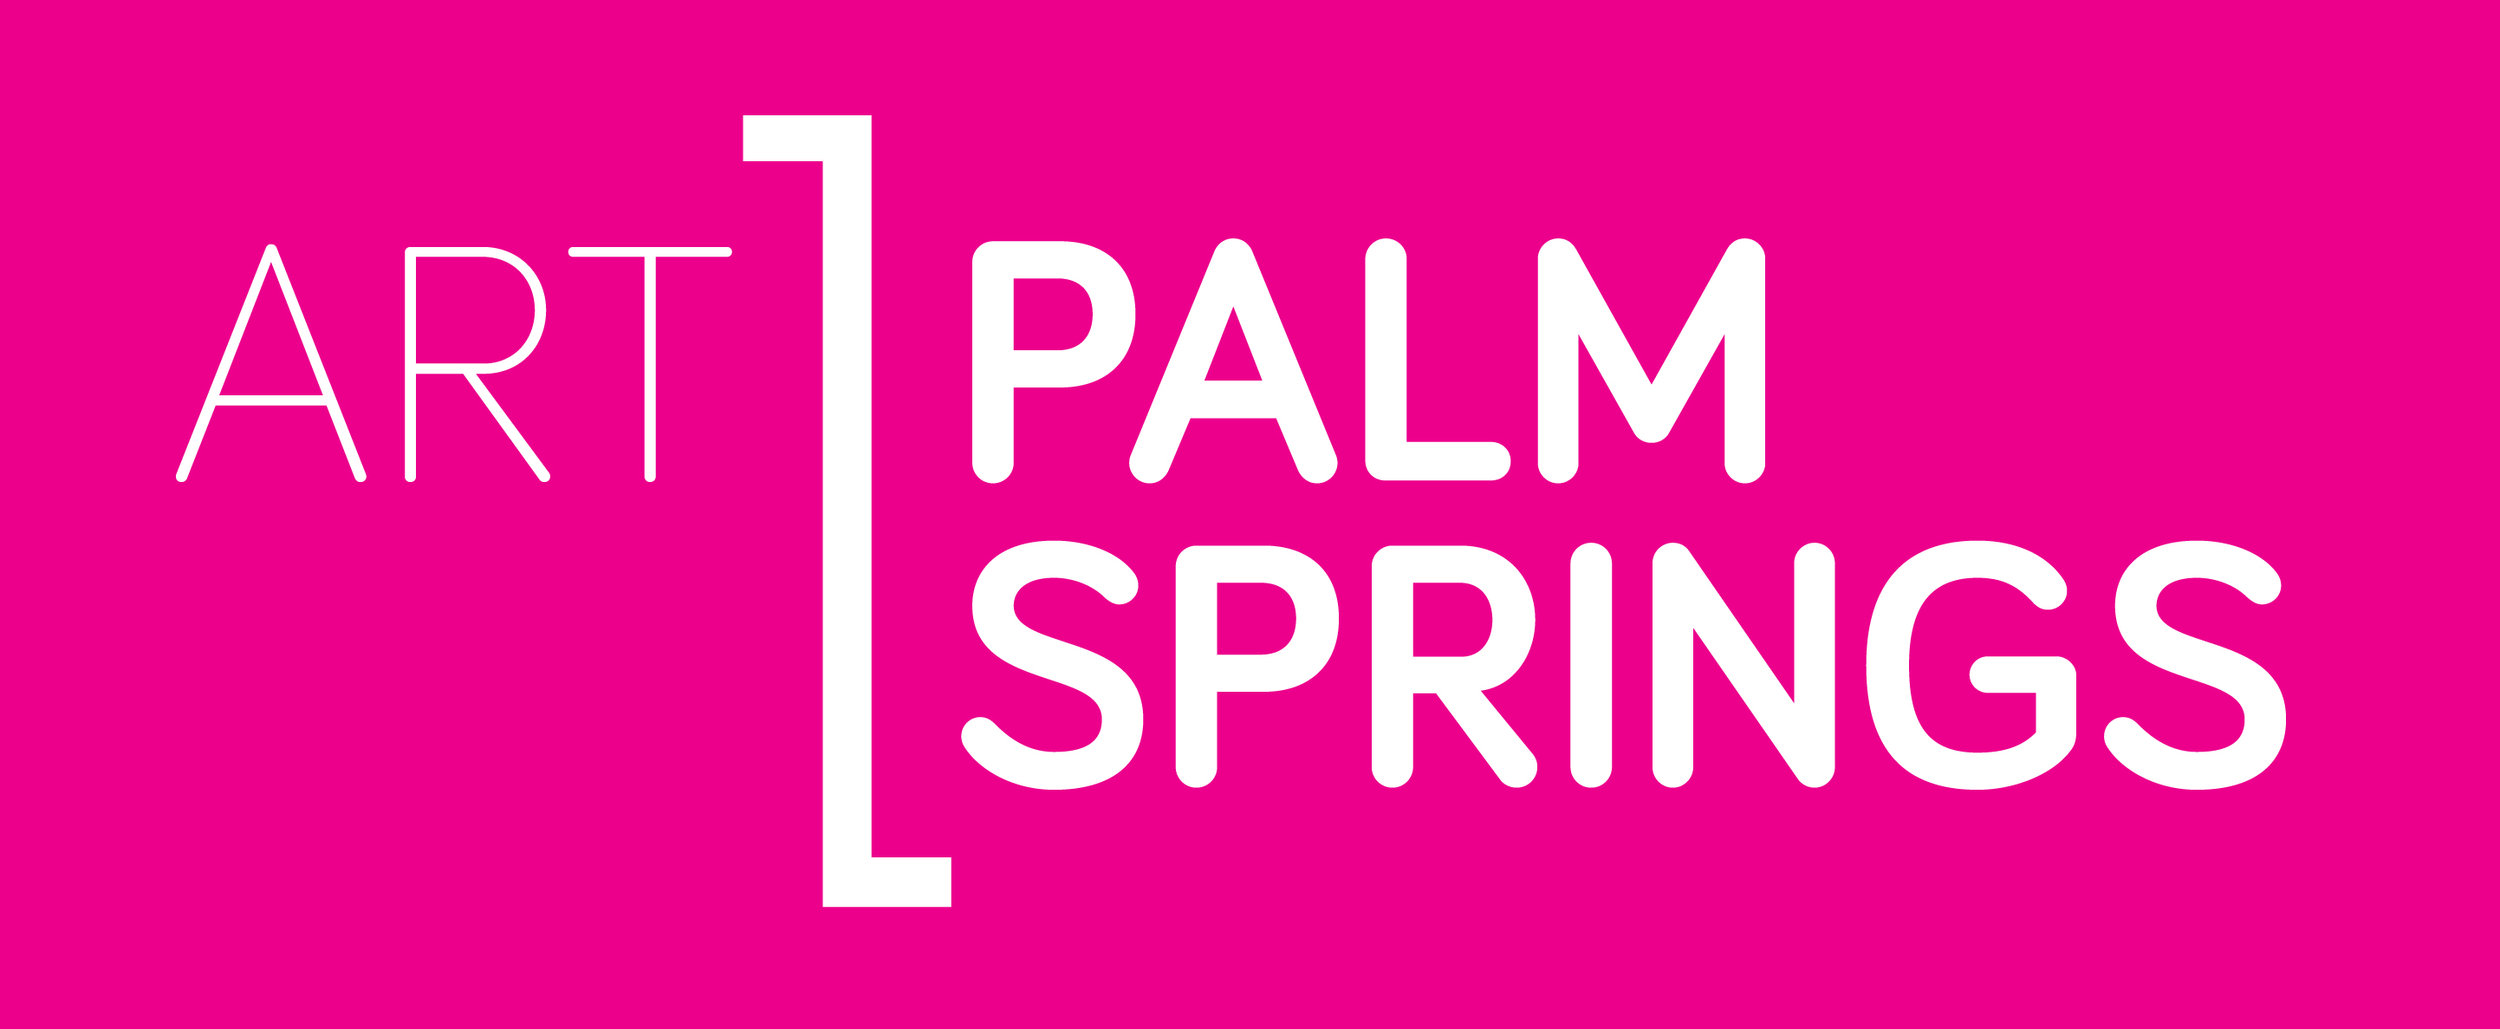 art palm springs.jpg